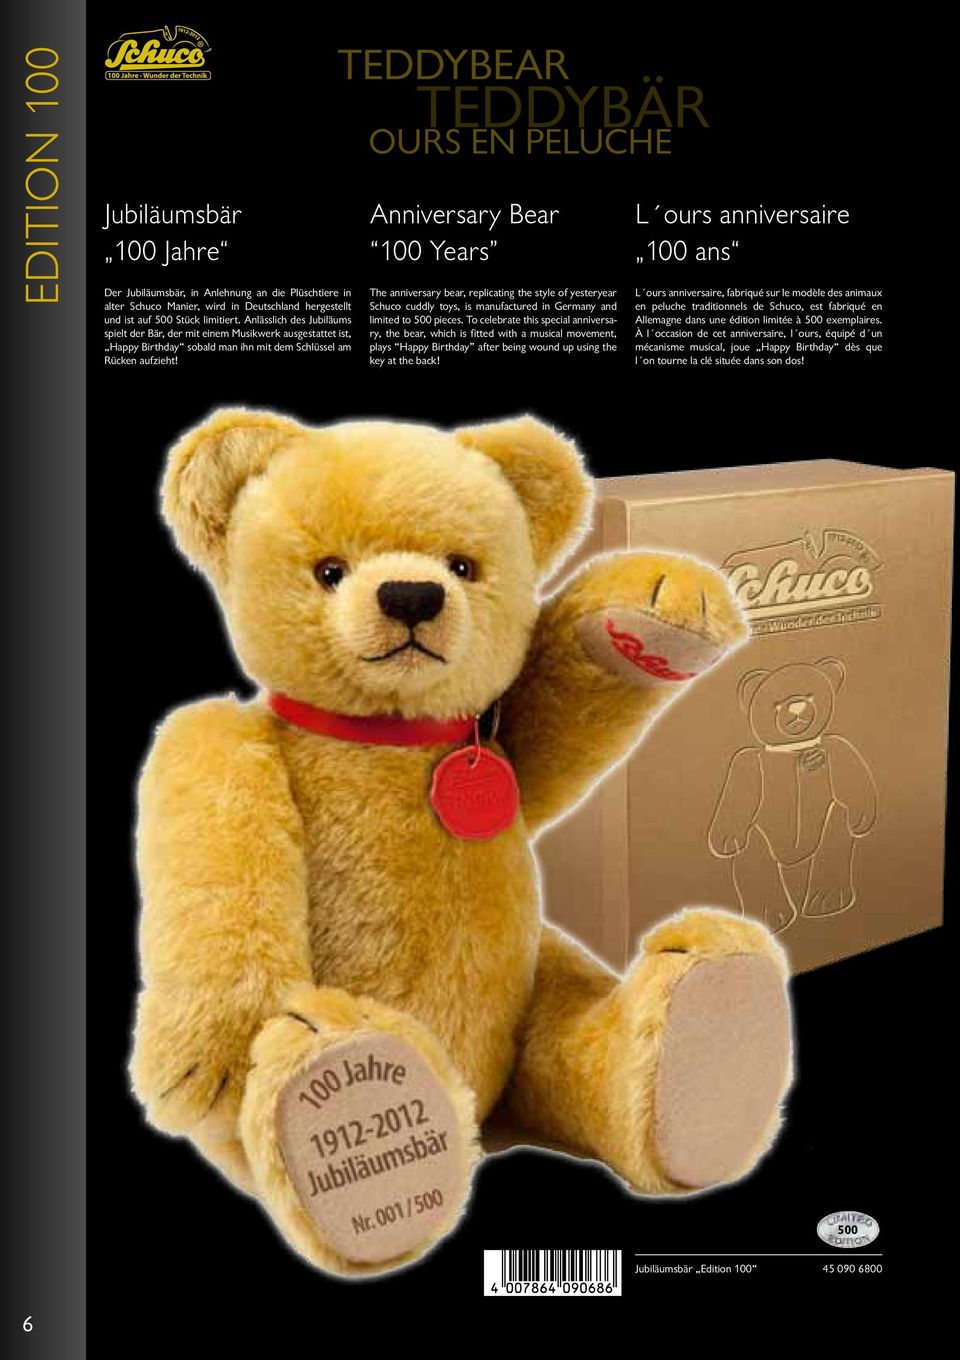 Teddybear Teddybär ours en peluche Anniversary Bear 100 Years The anniversary bear, replicating the style of yesteryear Schuco cuddly toys, is manufactured in Germany and limited to 500 pieces.